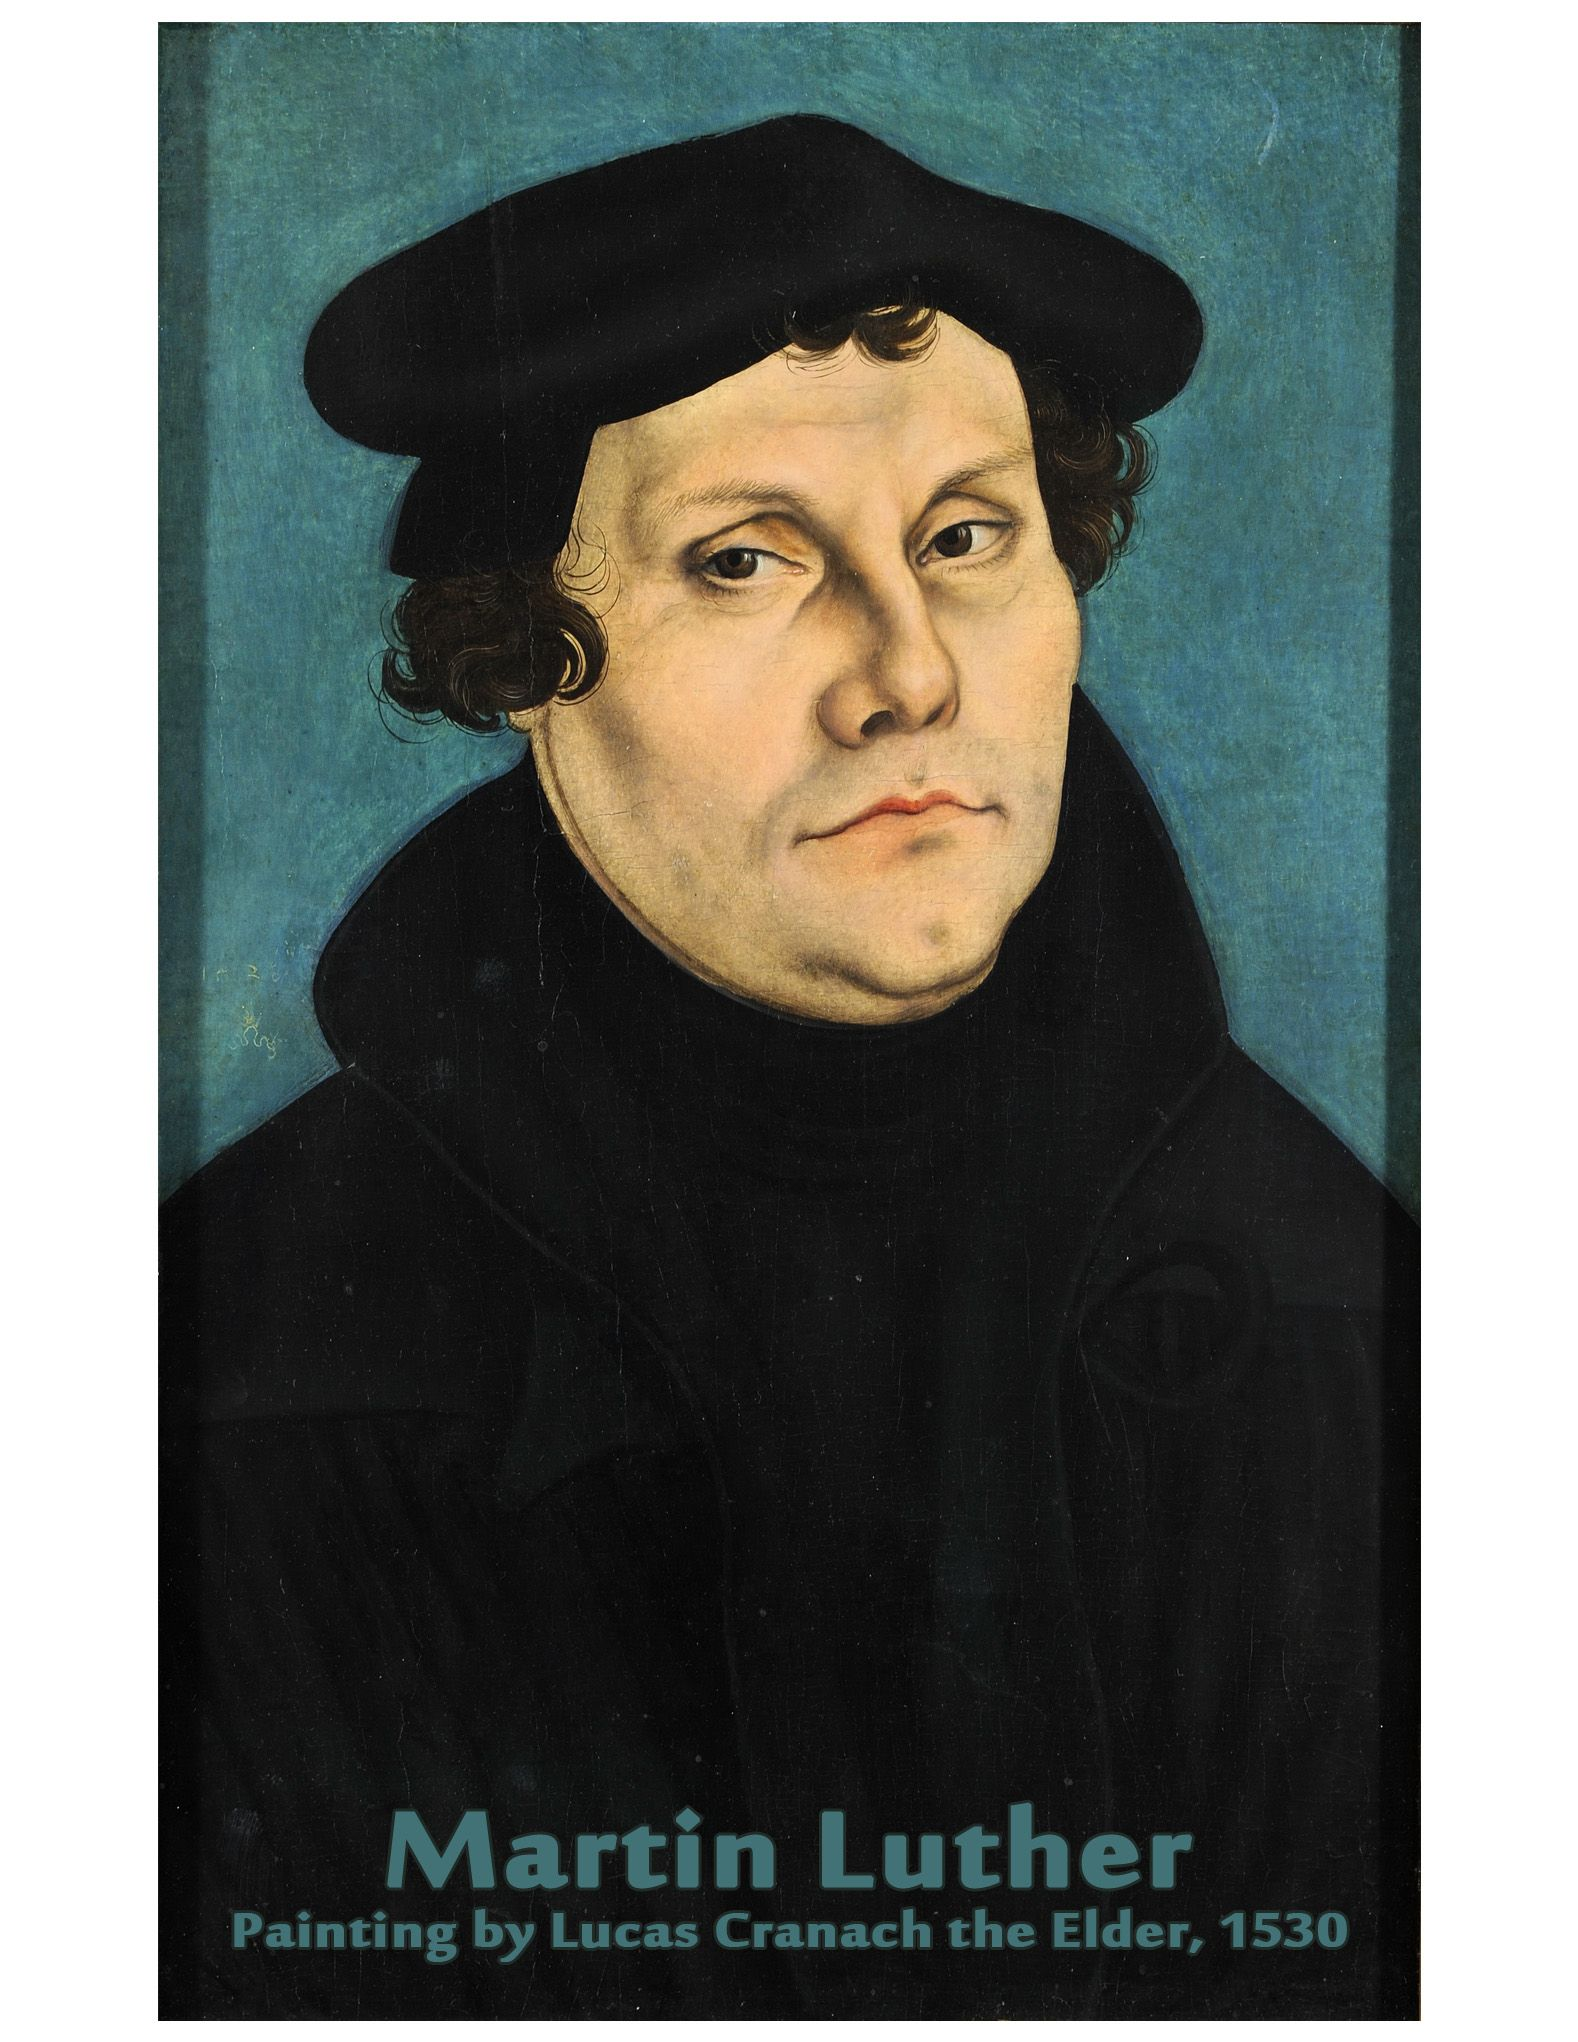 Teaching Toddlers About Martin Luther The Reformation